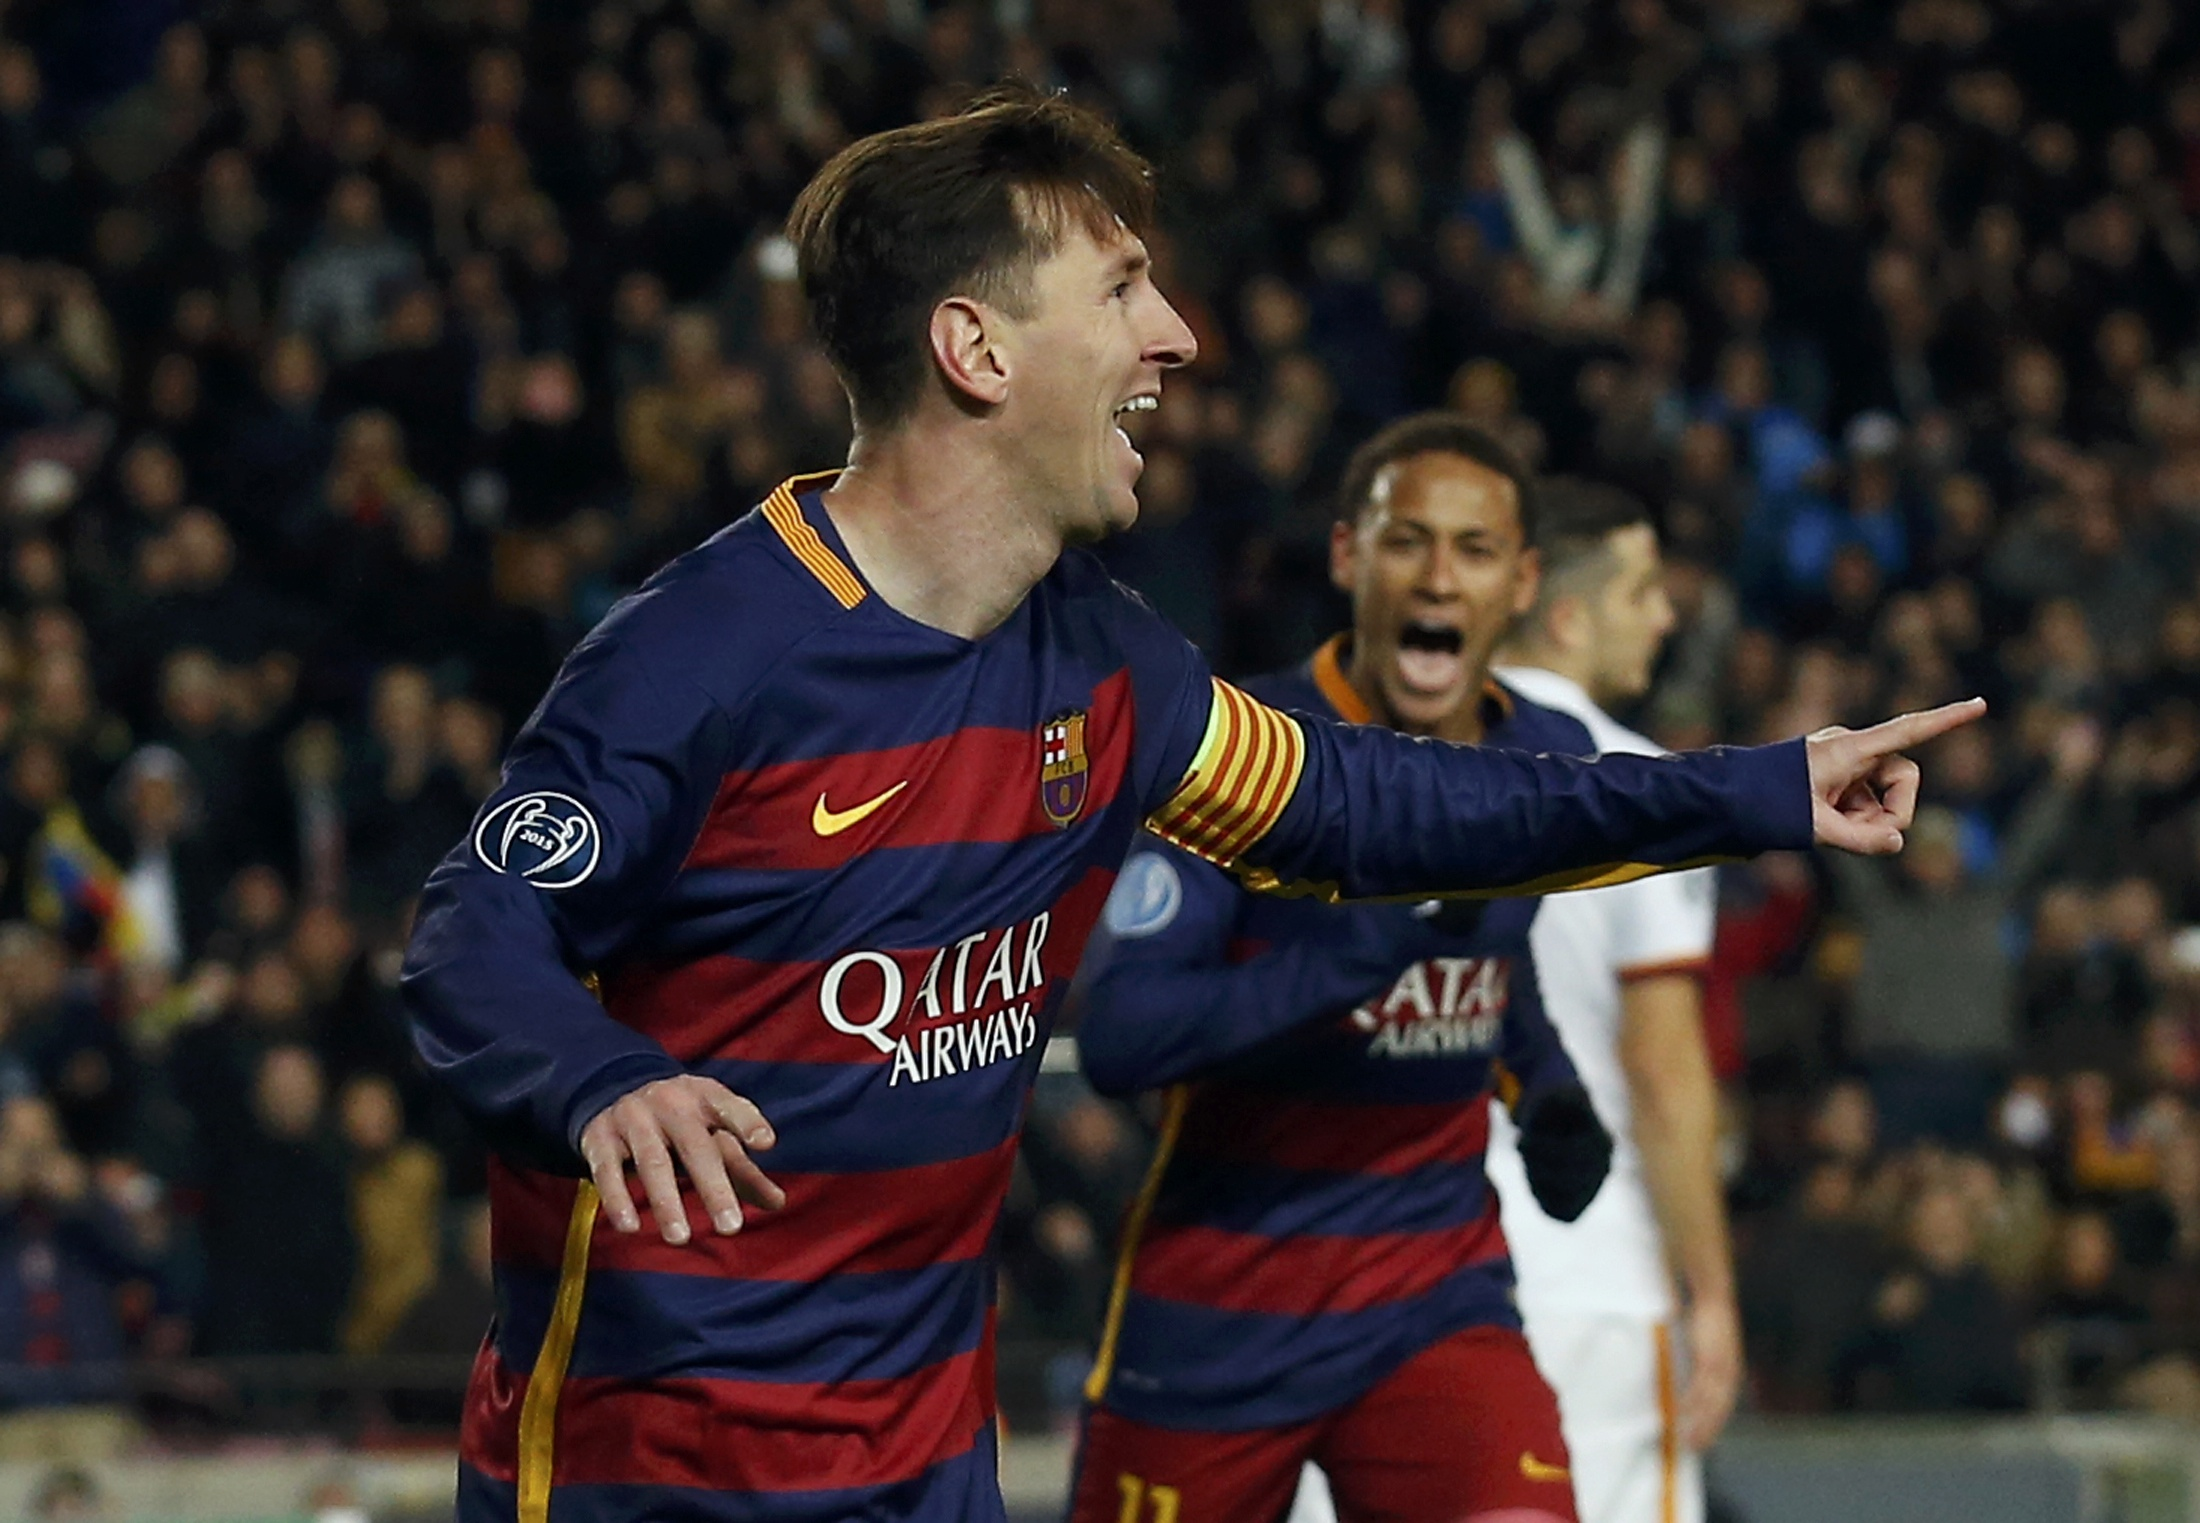 Barcelona's Lionel Messi celebrates scoring the second goal against AS Roma during UEFA Champions League Group Stage in Camp Nou, Barcelona, Spain on November 24, 2015. Photo: Reuters